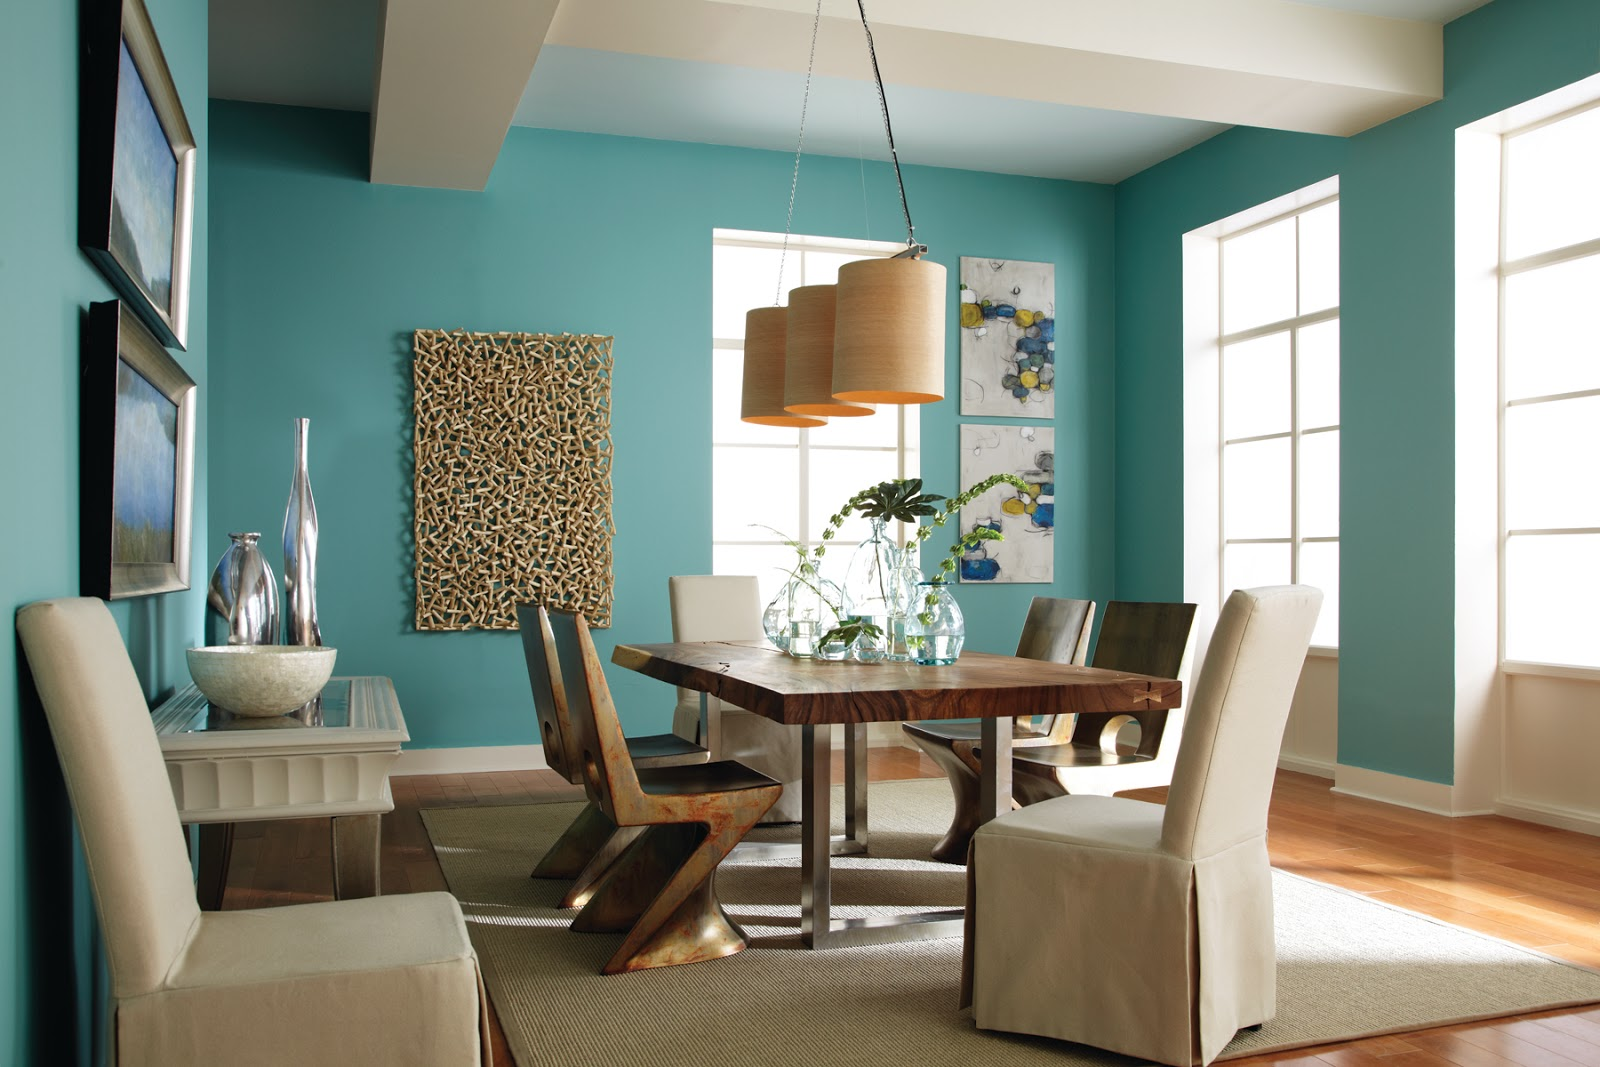 Susan Hawke : Decorating Trends 2014: How to add intrigue to a ...